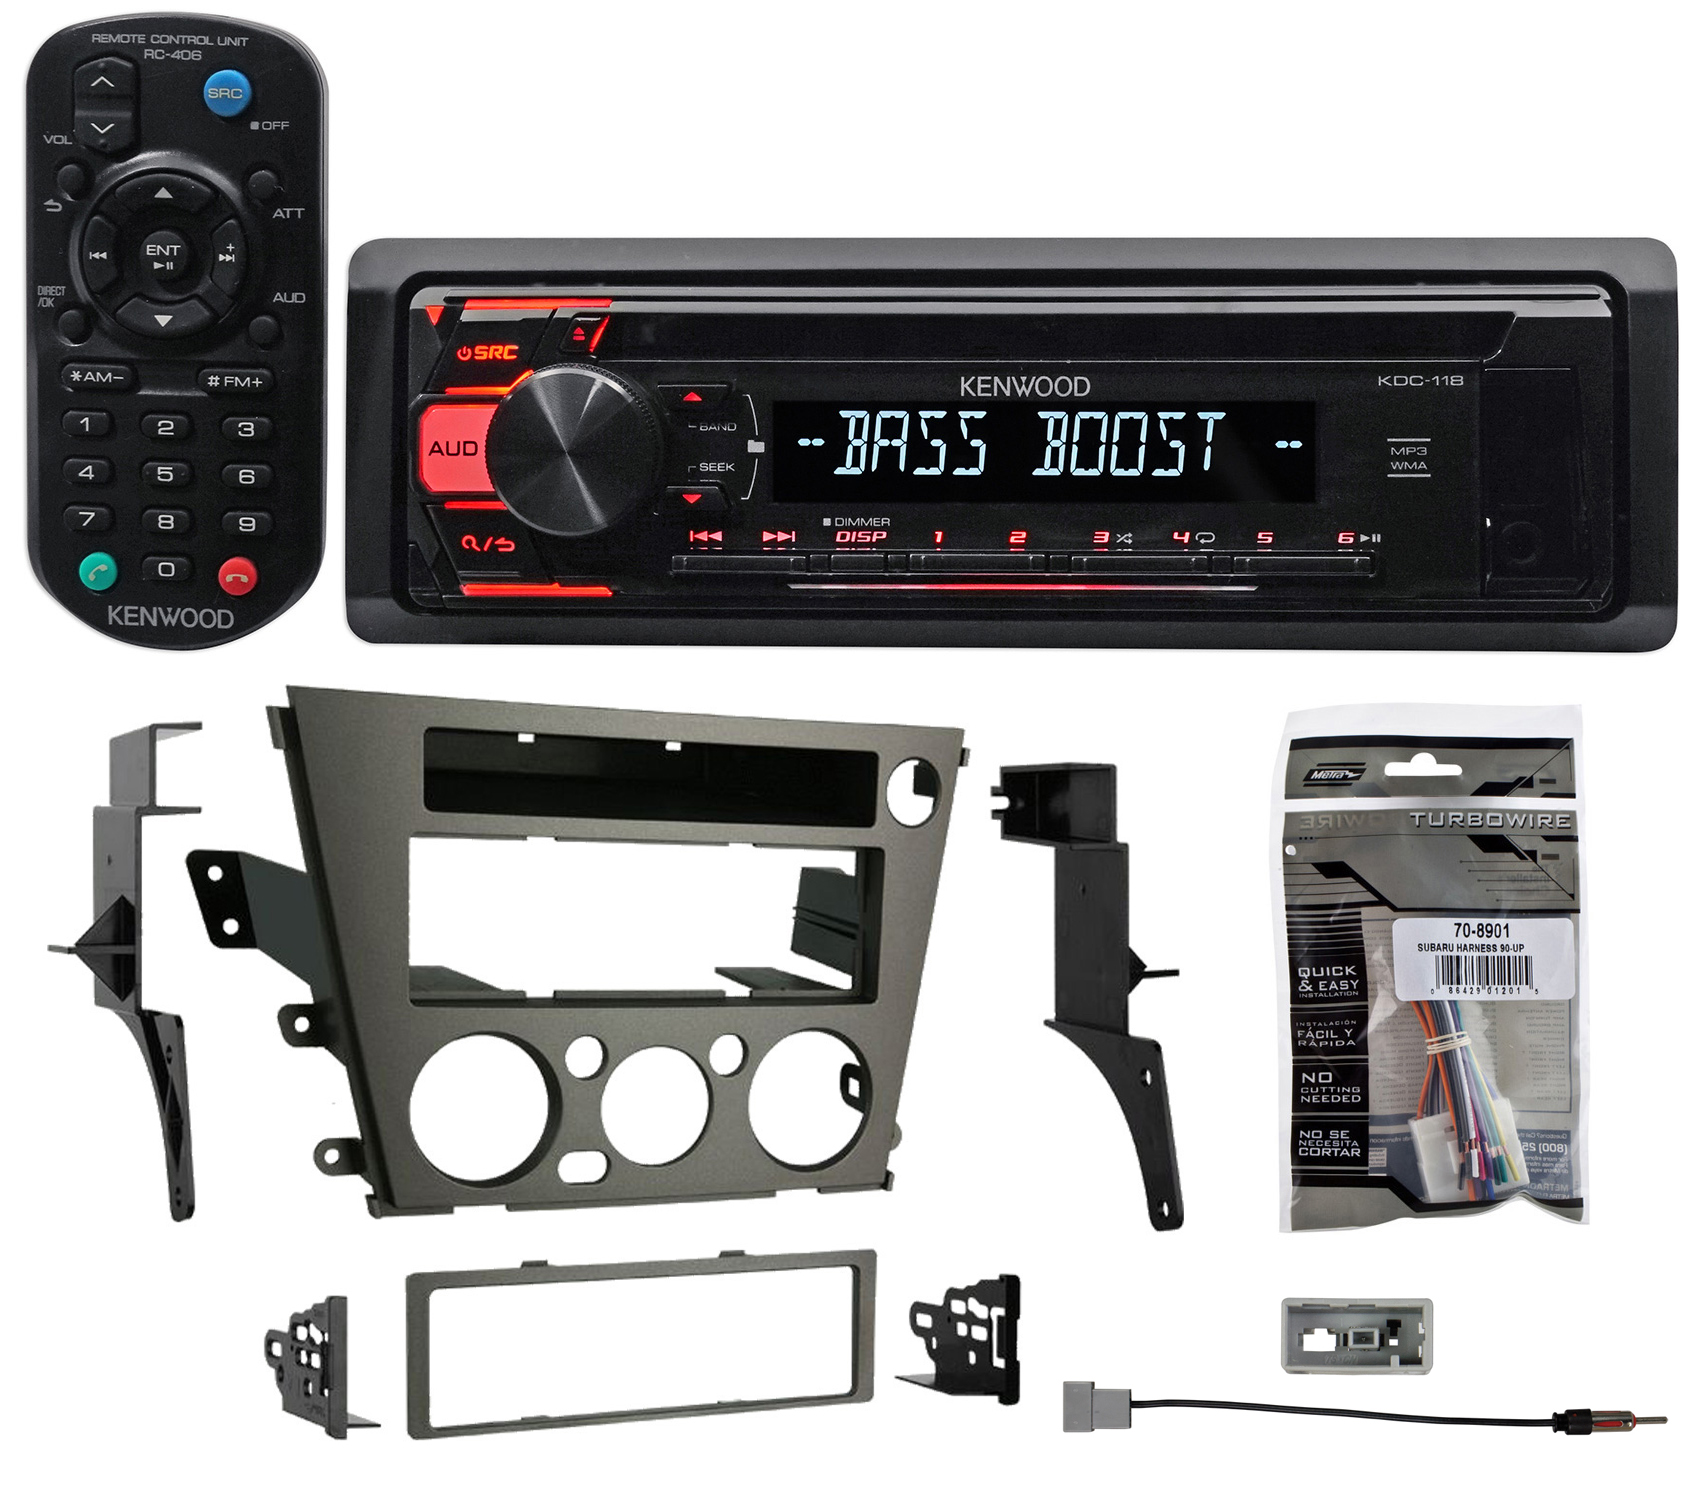 2005-2009 Subaru Outback Kenwood CD Player Receiver Stereo MP3 Aux+Remote by Kenwood